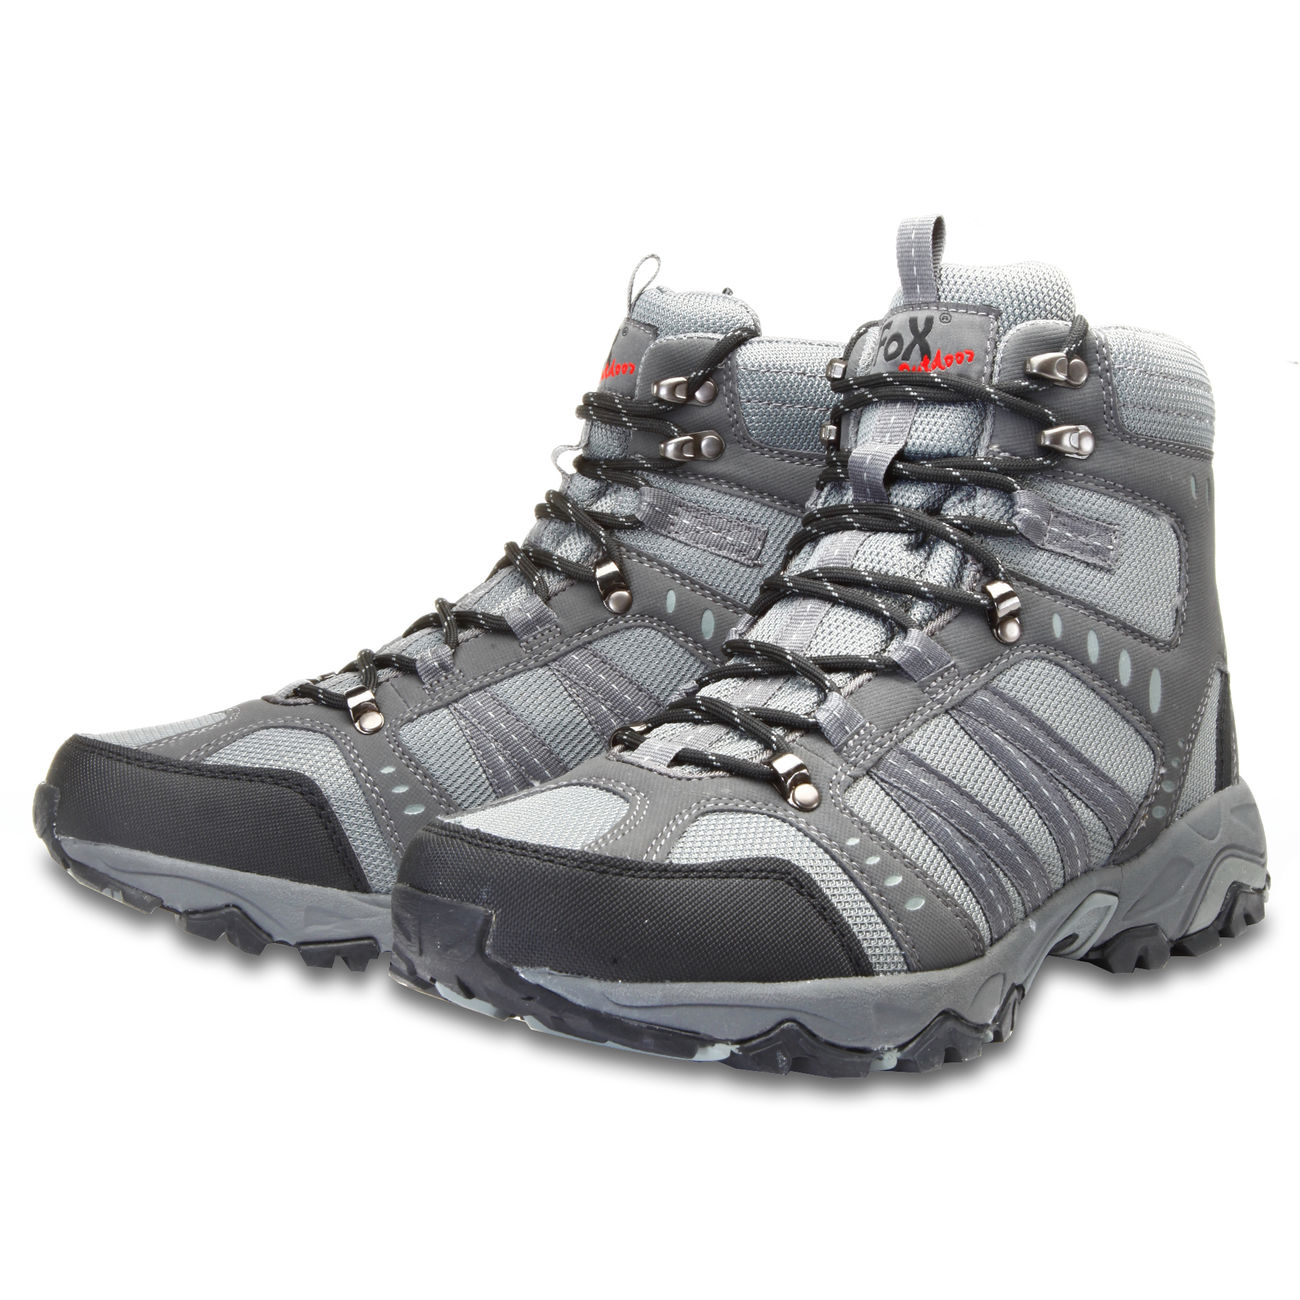 Fox Outdoor Trekkingschuh Mountain High grau 2